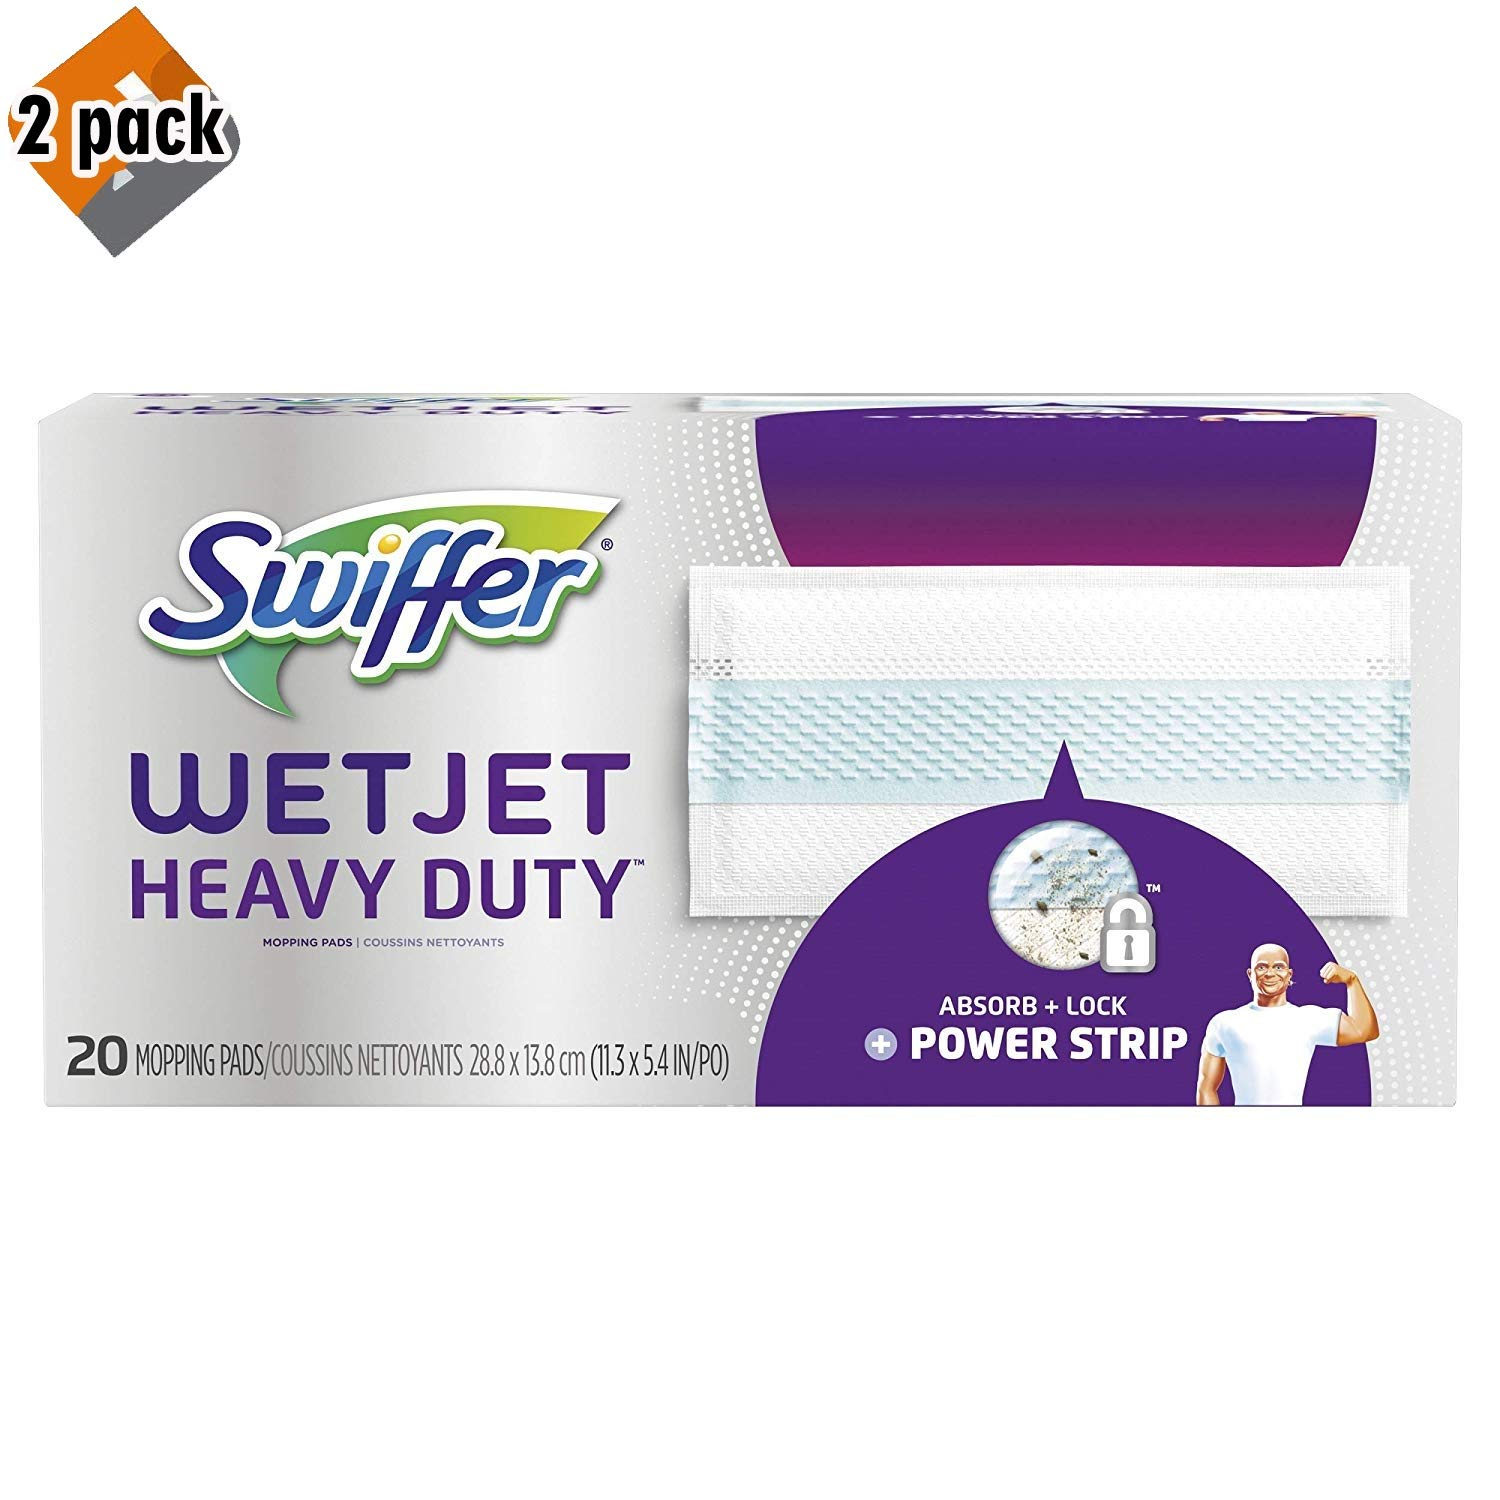 Swiffer Wetjet Heavy Duty Mop Pad Refills for Floor Mopping and Cleaning, All Purpose Multi Surface Floor Cleaning Product, 20 Count (Packaging May Vary) - 2 Pack by Swiffer (Image #1)